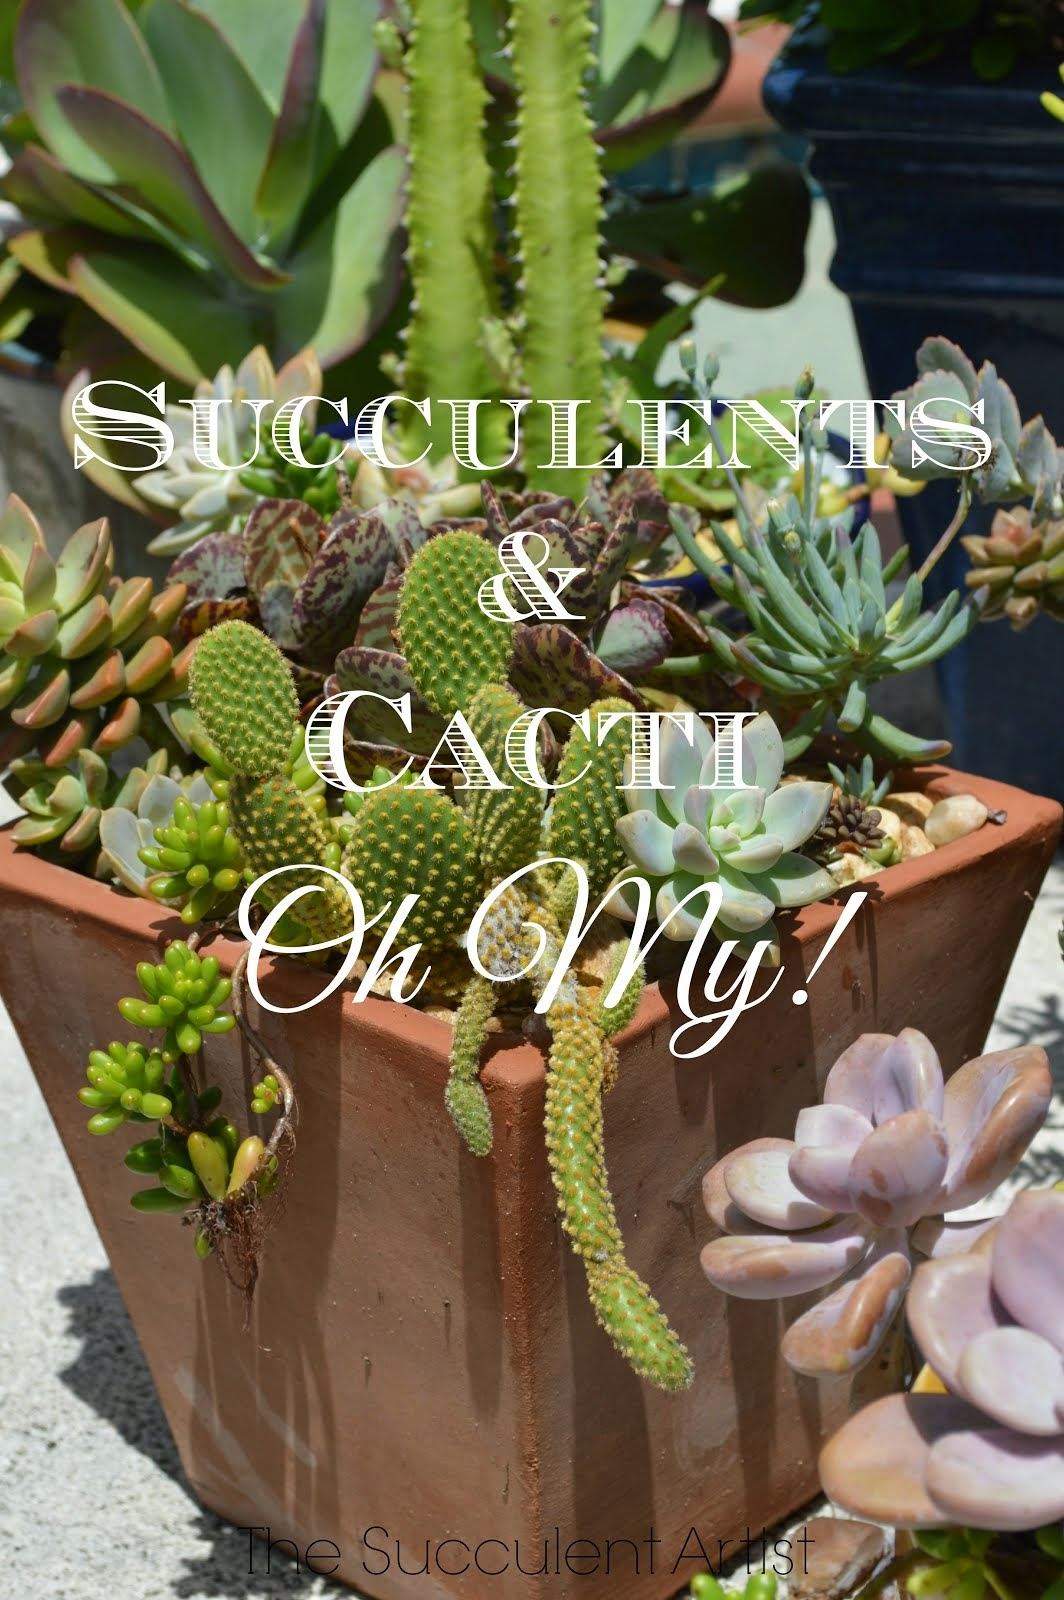 I LOVE Succulents photo - Succulents and cacti oh my!- photography by Catherine of Inspire Bohemia a